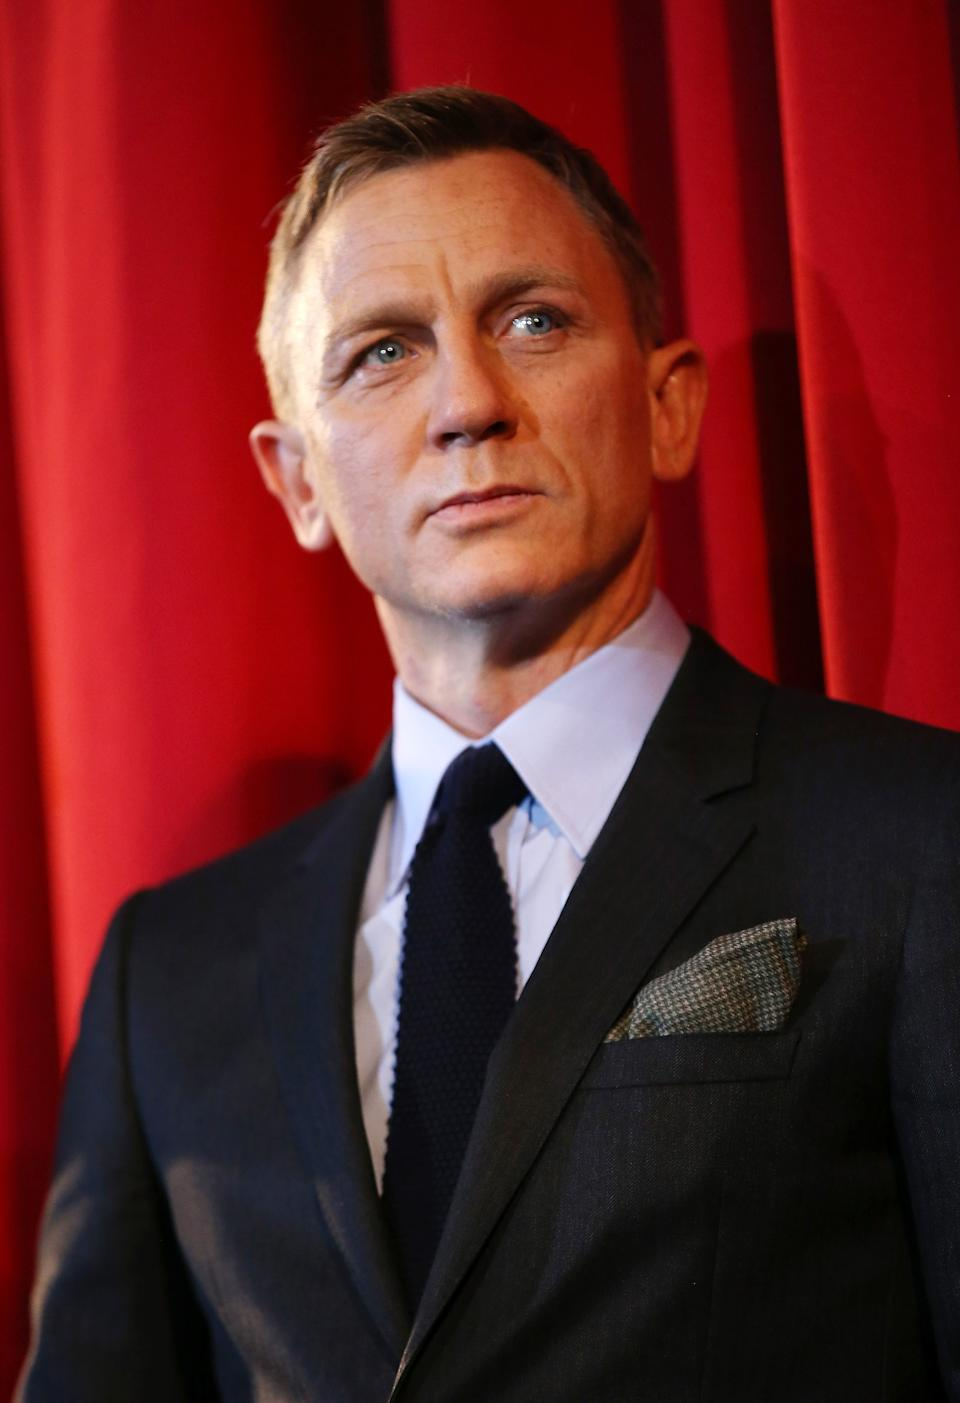 BERLIN, GERMANY - OCTOBER 28:  Actor Daniel Craig attends the German premiere of the new James Bond movie 'Spectre' at CineStar on October 28, 2015 in Berlin, Germany.  (Photo by Sean Gallup/Getty Images for Sony Pictures)